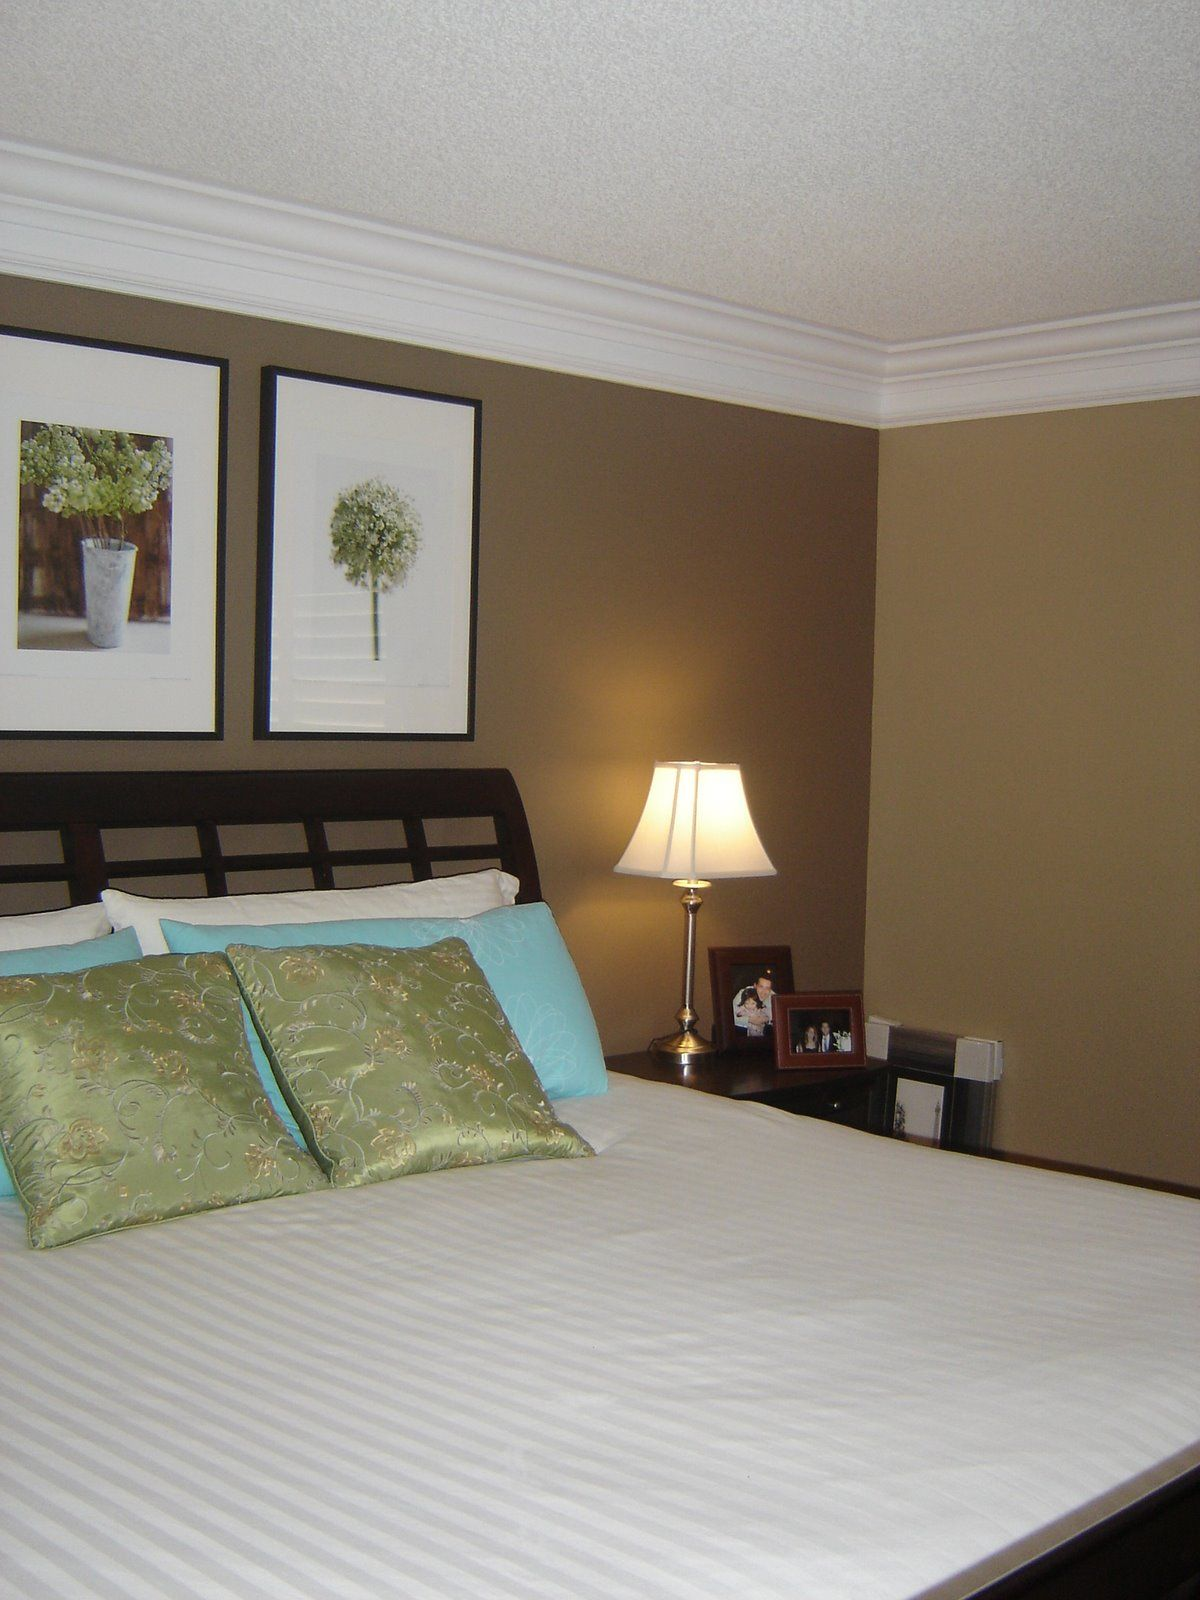 New Colours For Bedrooms Master Bedroom With New Wall Color Benjamin Moore